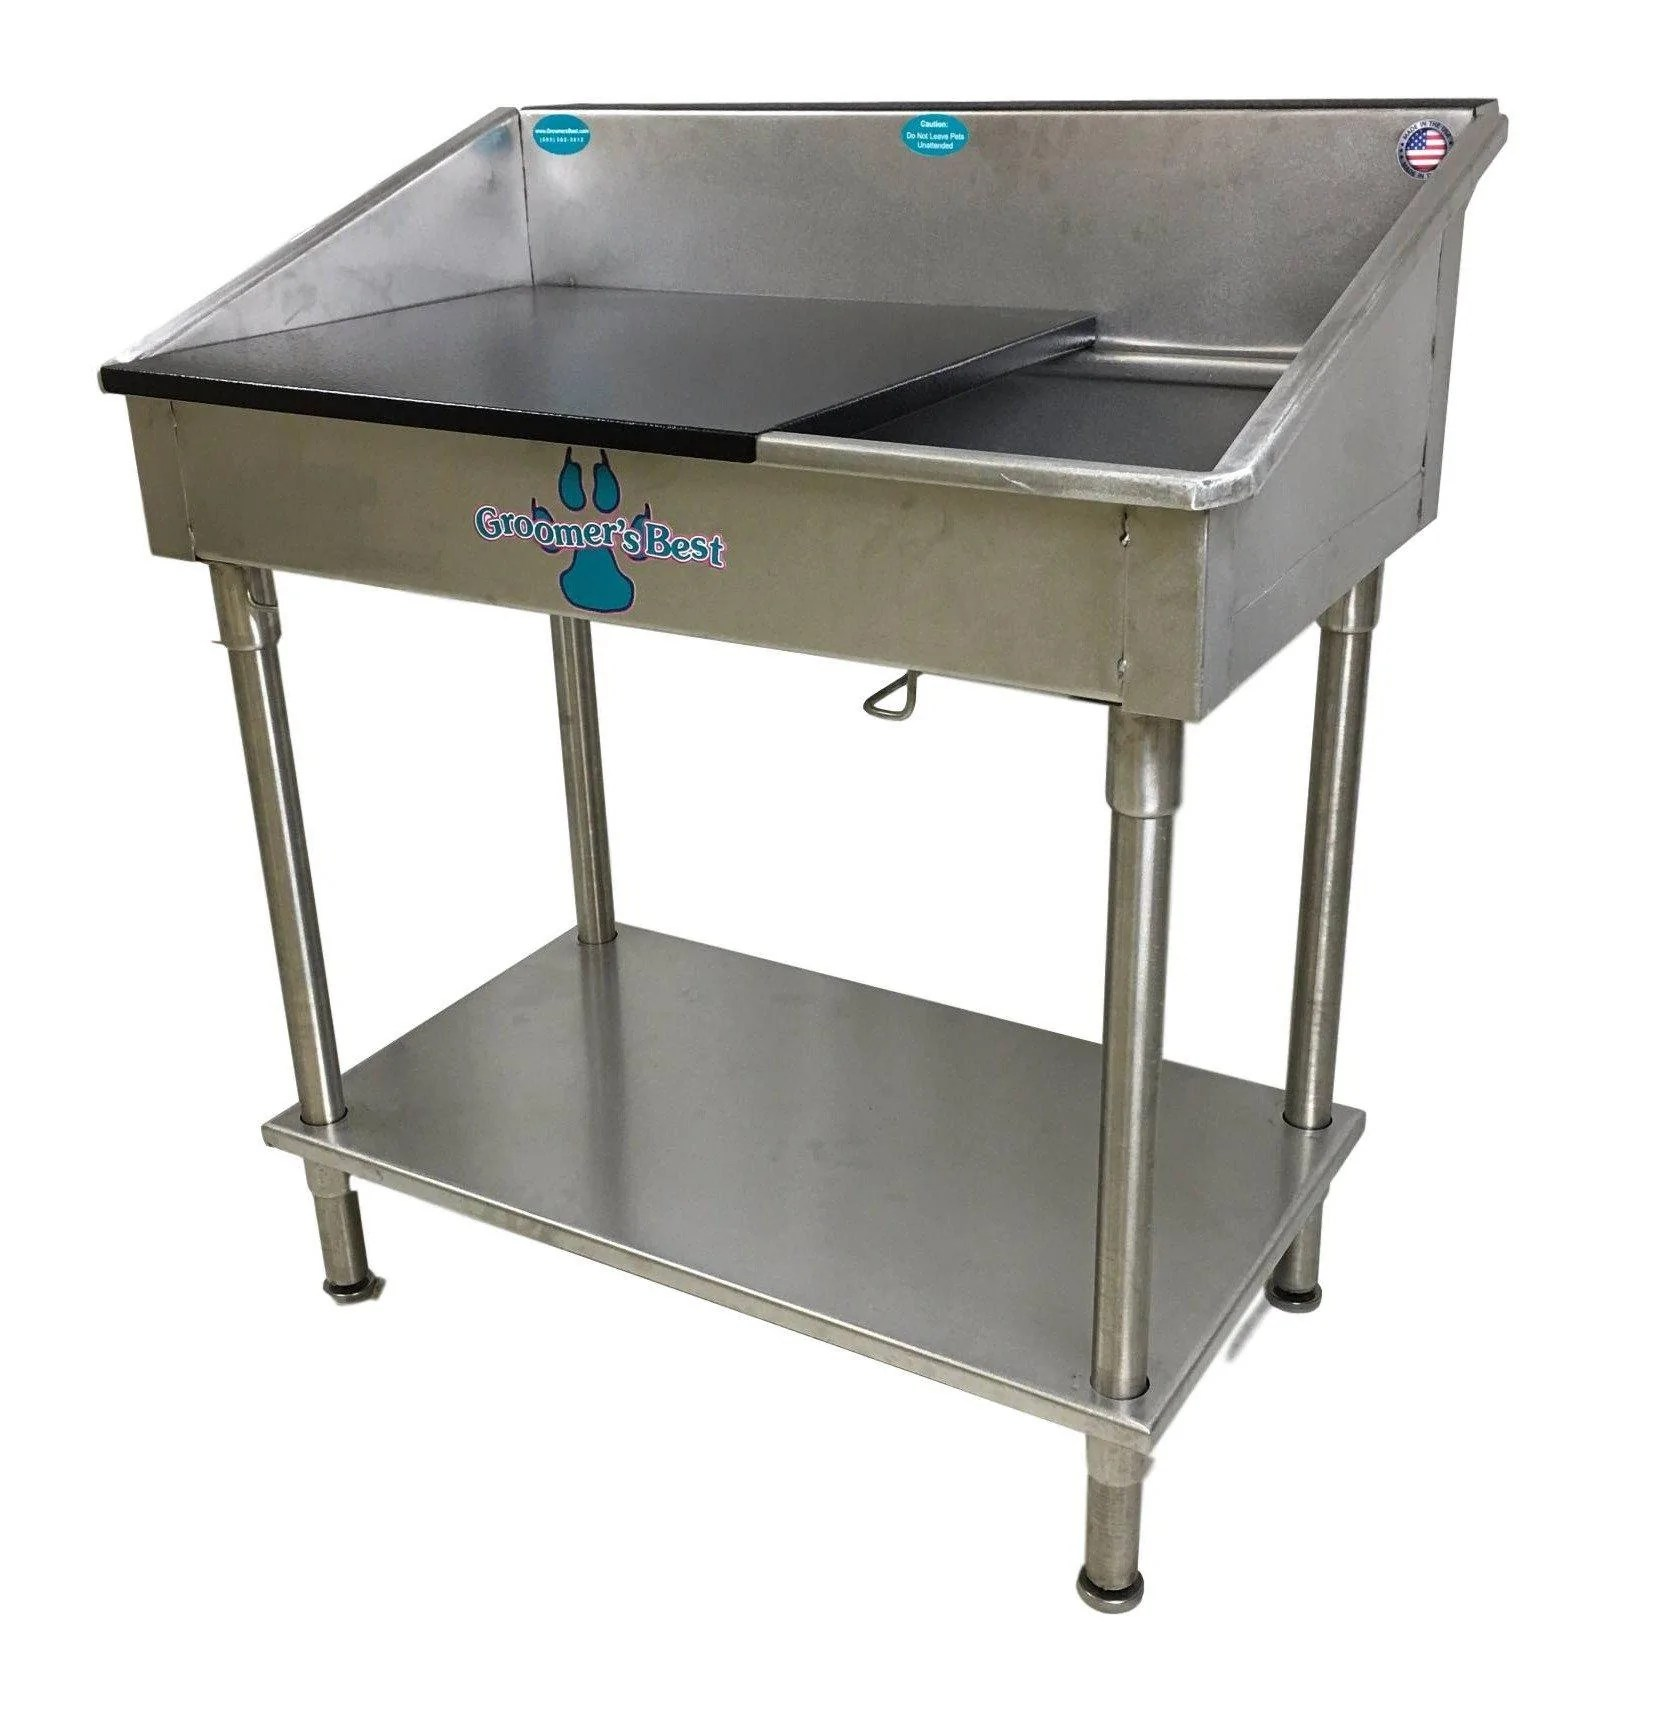 groomer s best stainless steel shallow utility sink for grooming and veterinary professionals